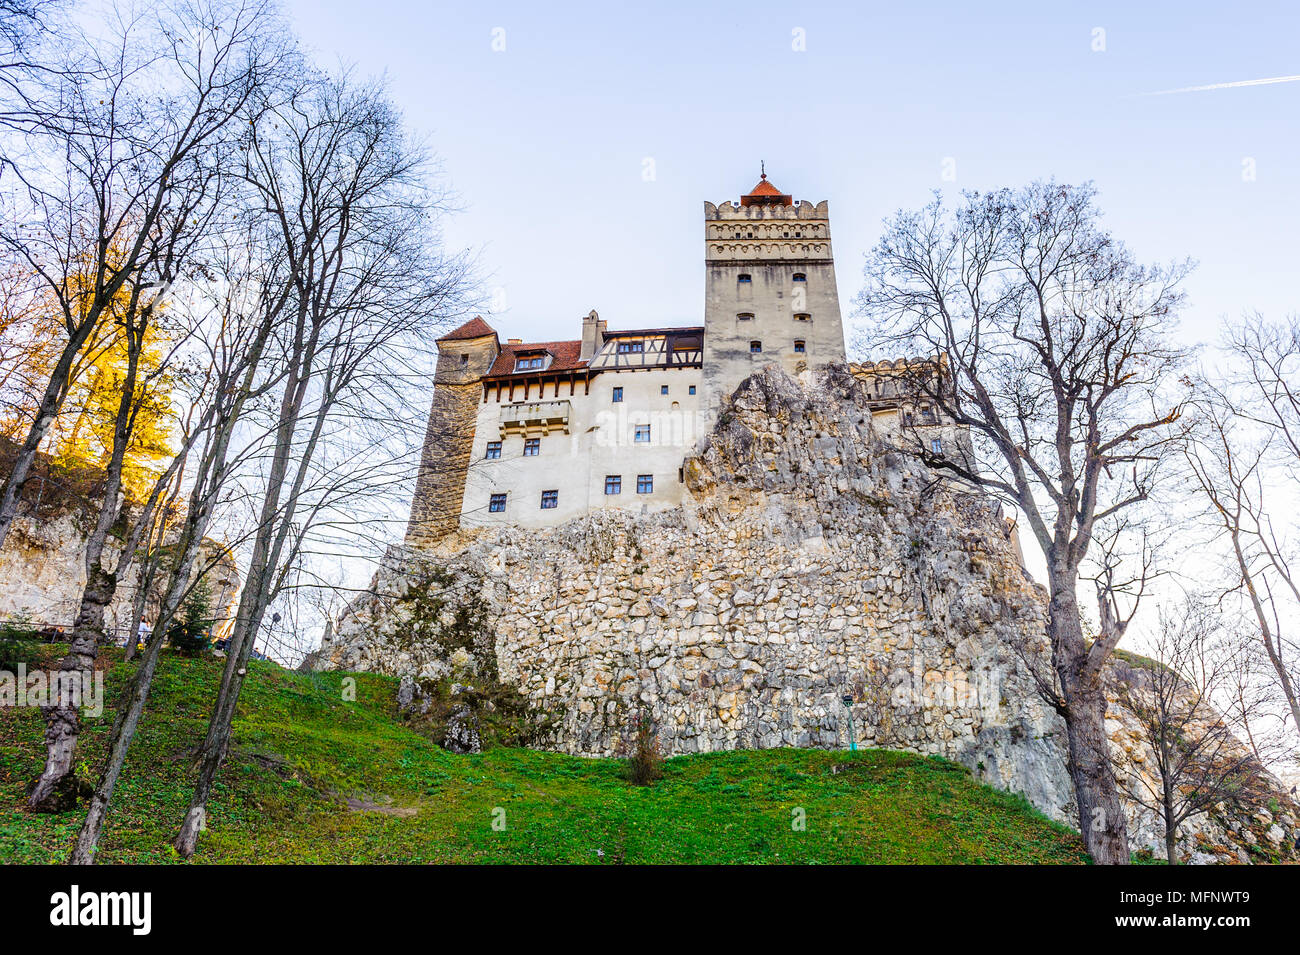 Bran Castle (Dracula Castle) on the top of the rock, Transylvania, Bran, Romania - Stock Image